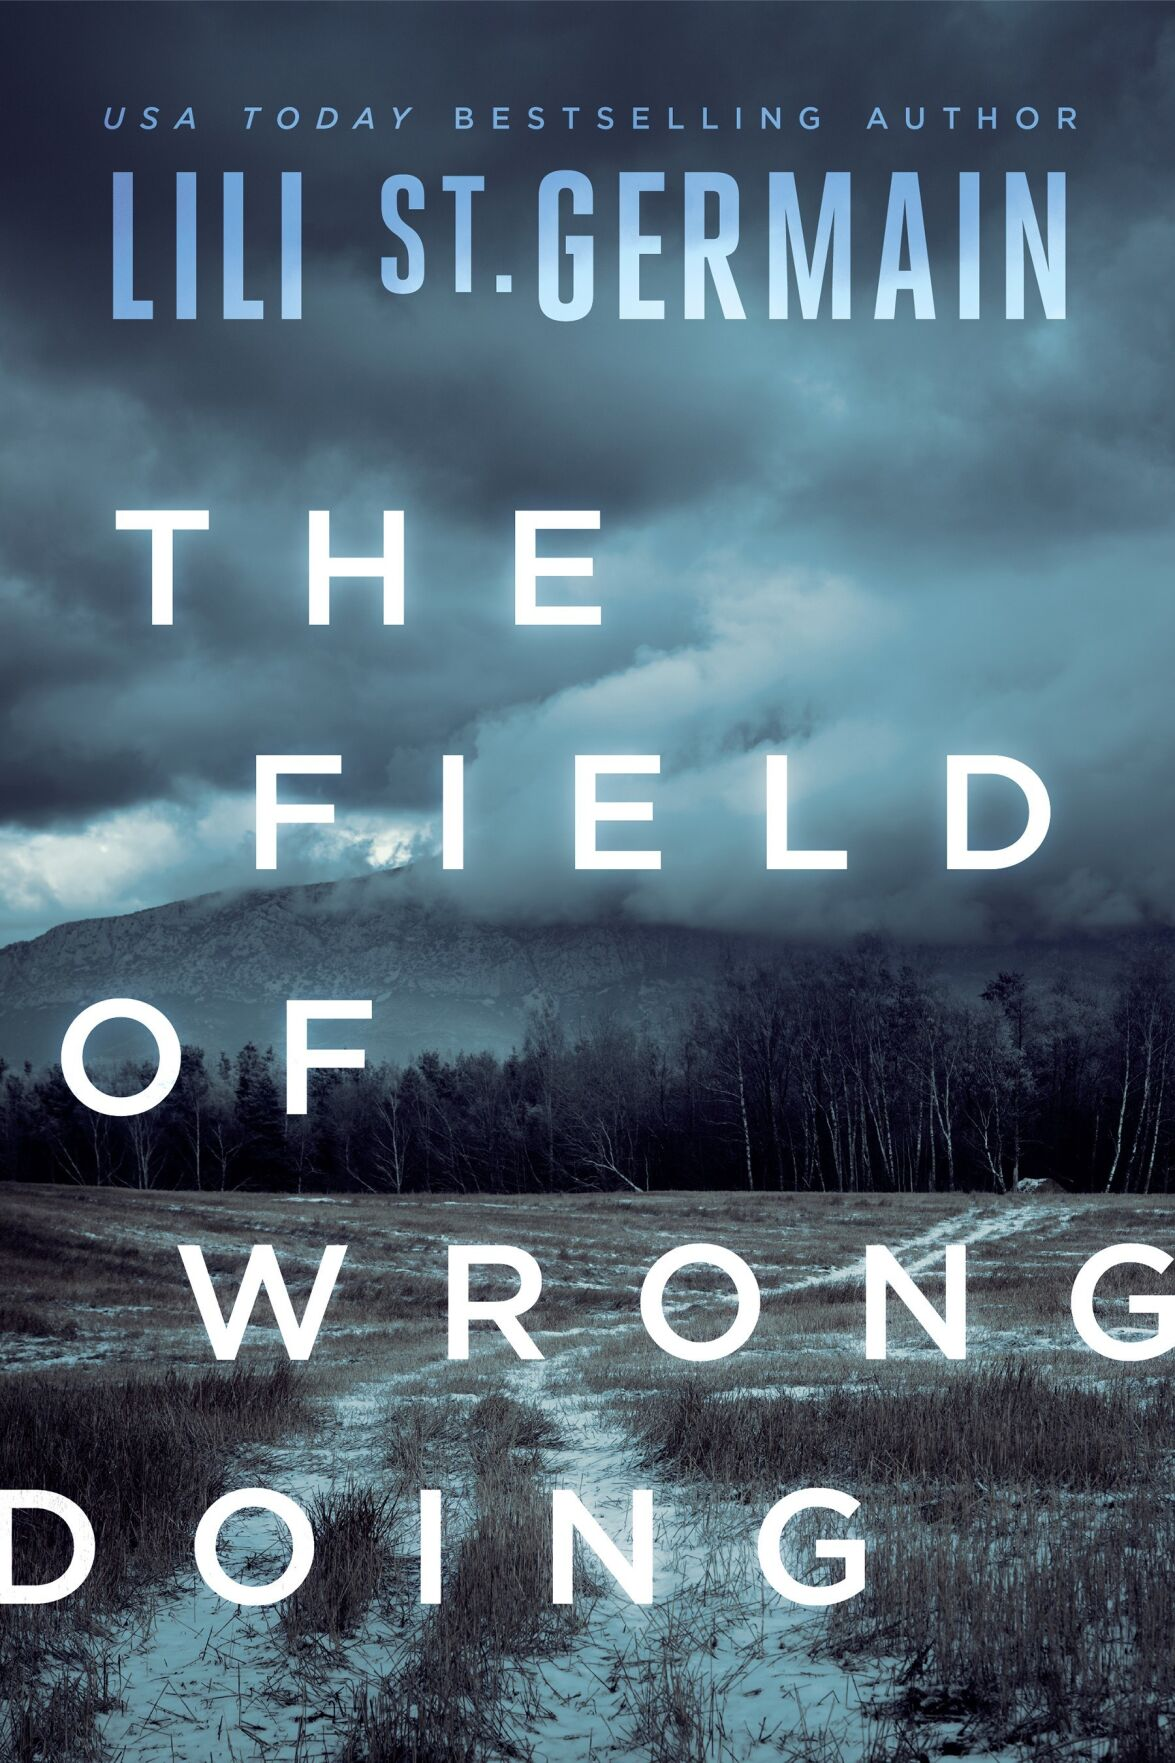 The Field of Wrongdoing by Lili Saint Germain